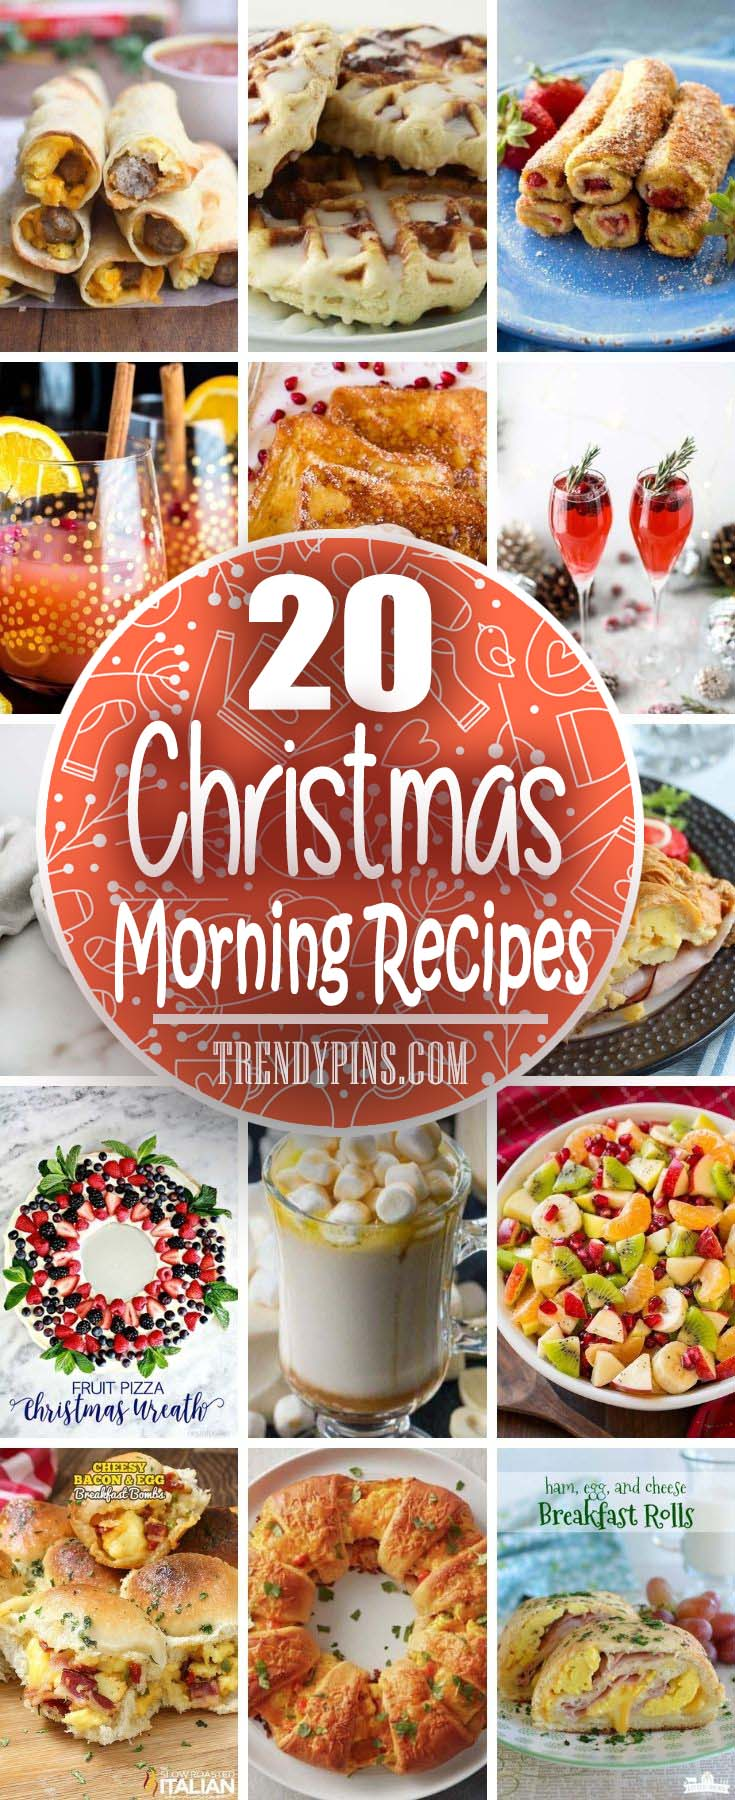 20 Christmas Morning Recipes #Christmas #breakfast #sandwiches #trendypins